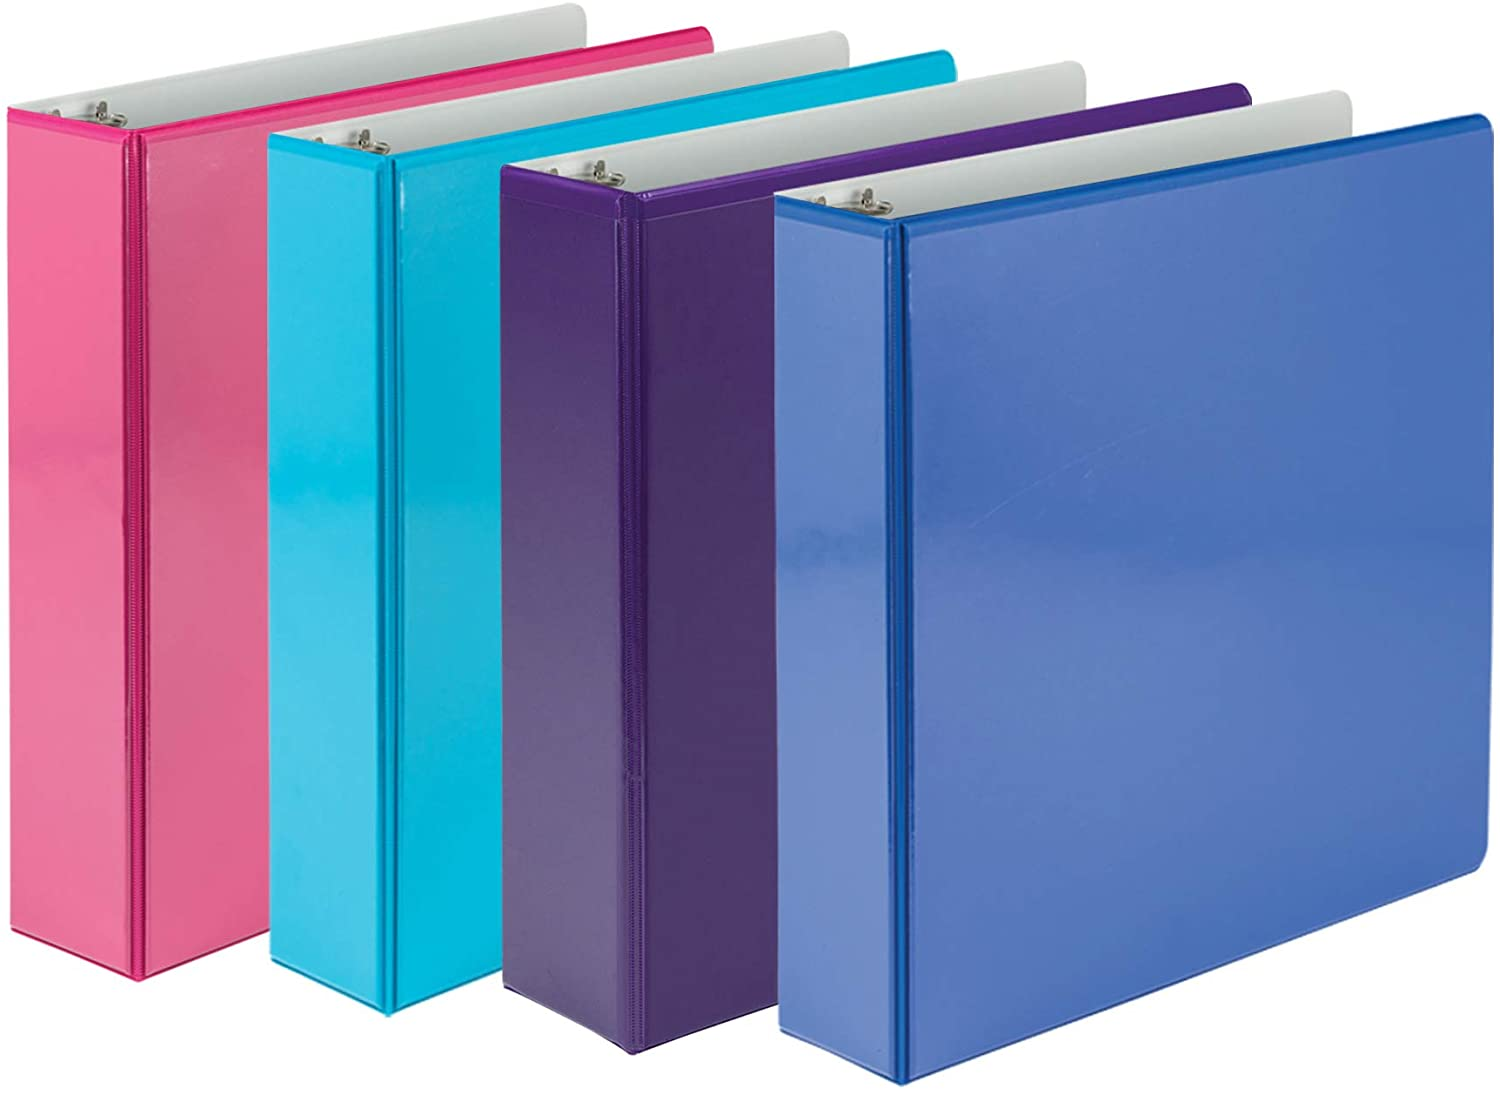 Samsill 3 Ring Binder, Clear View 2 Inch Binder, 4 Pack Heavy Duty Three Ring Binders, Two-Tone Color Assorted Pack for Home, Office, and School Supplies, Designed for 8.5 Inch X 11 Inch Paper,